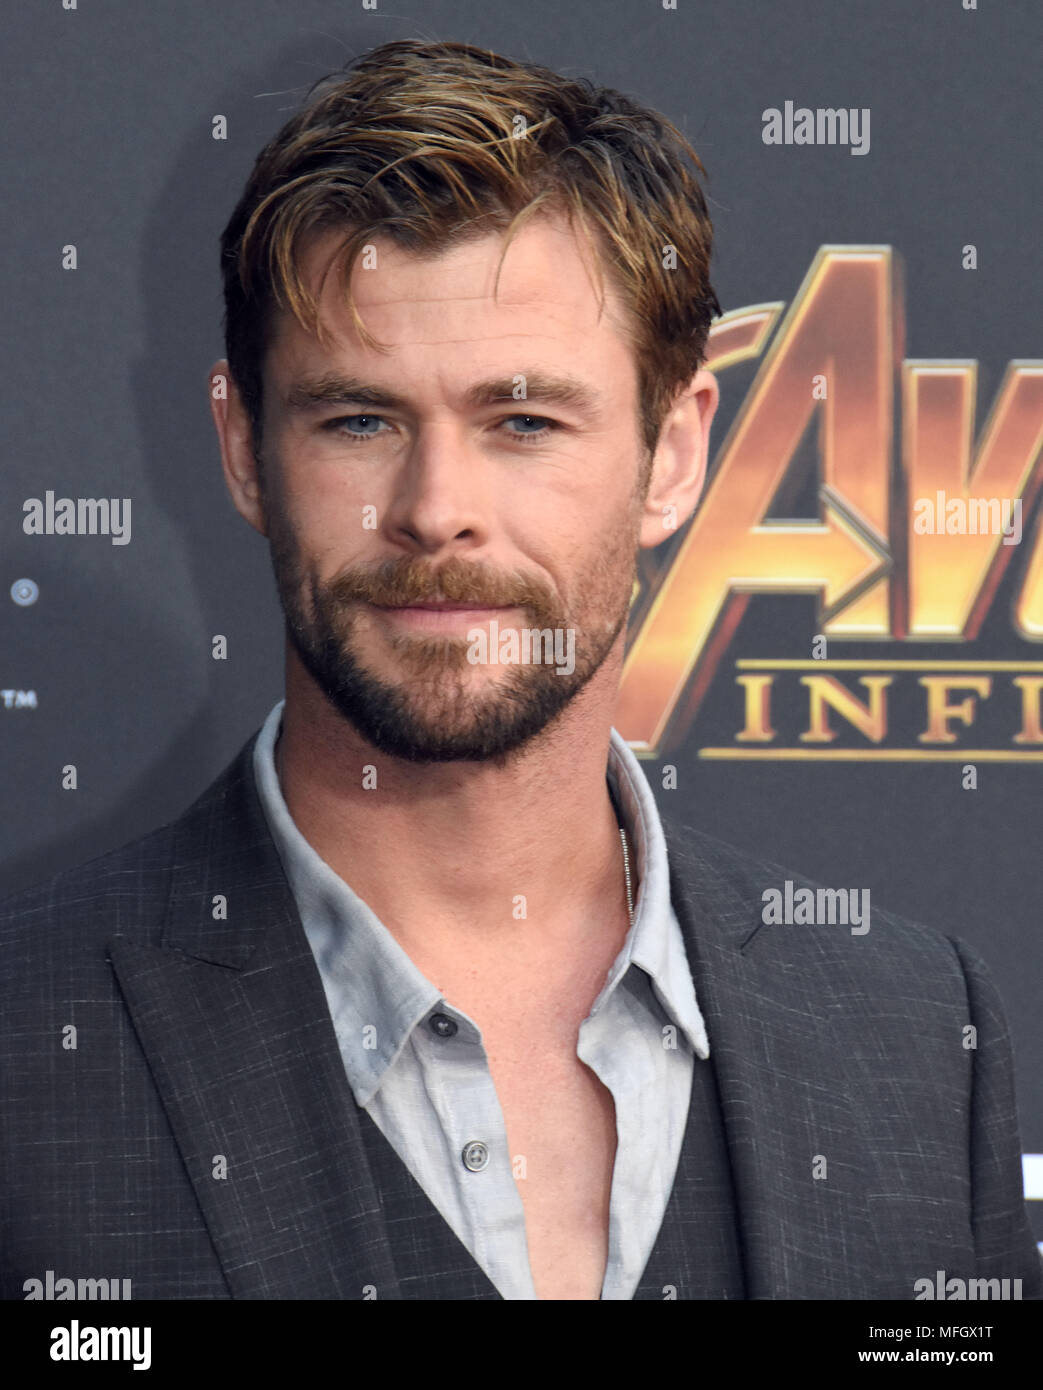 LOS ANGELES, CA - APRIL 23: Actor Chris Hemsworth attends the World Premiere of Disney and Marvels 'Avengers: Infinity War' on April 23, 2018 in Los Angeles, California. Photo by Barry King/Alamy Live News Stock Photo